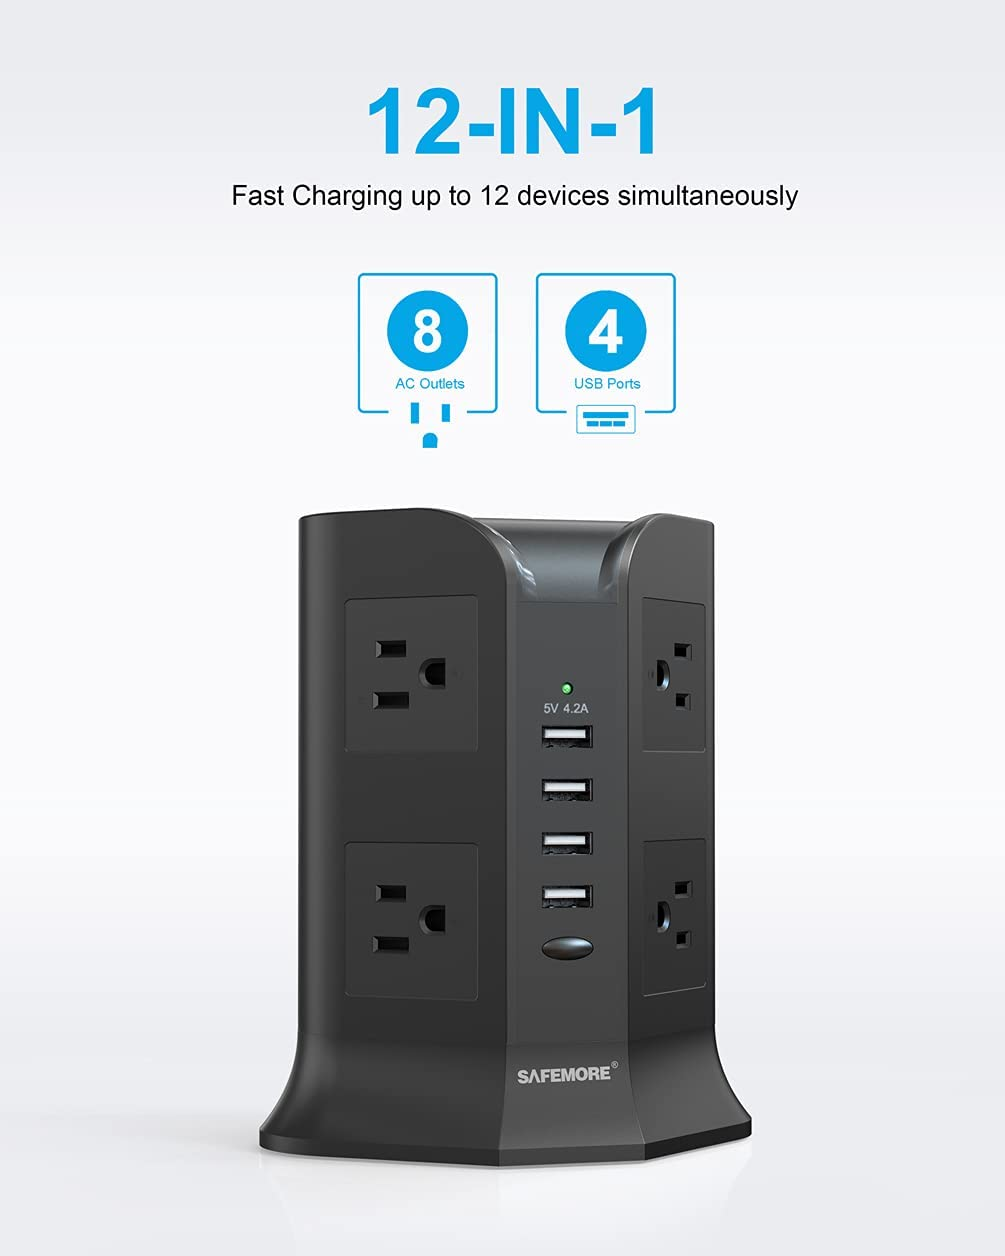 Power Strip Tower SAFEMORE Smart 8-Outlet 4-USB Surge Protector Desktop Power Plug Electrical Charging Station with 6.5ft Long Extension Cord with 4.2A USB for Home Office(Black) [Upgraded]